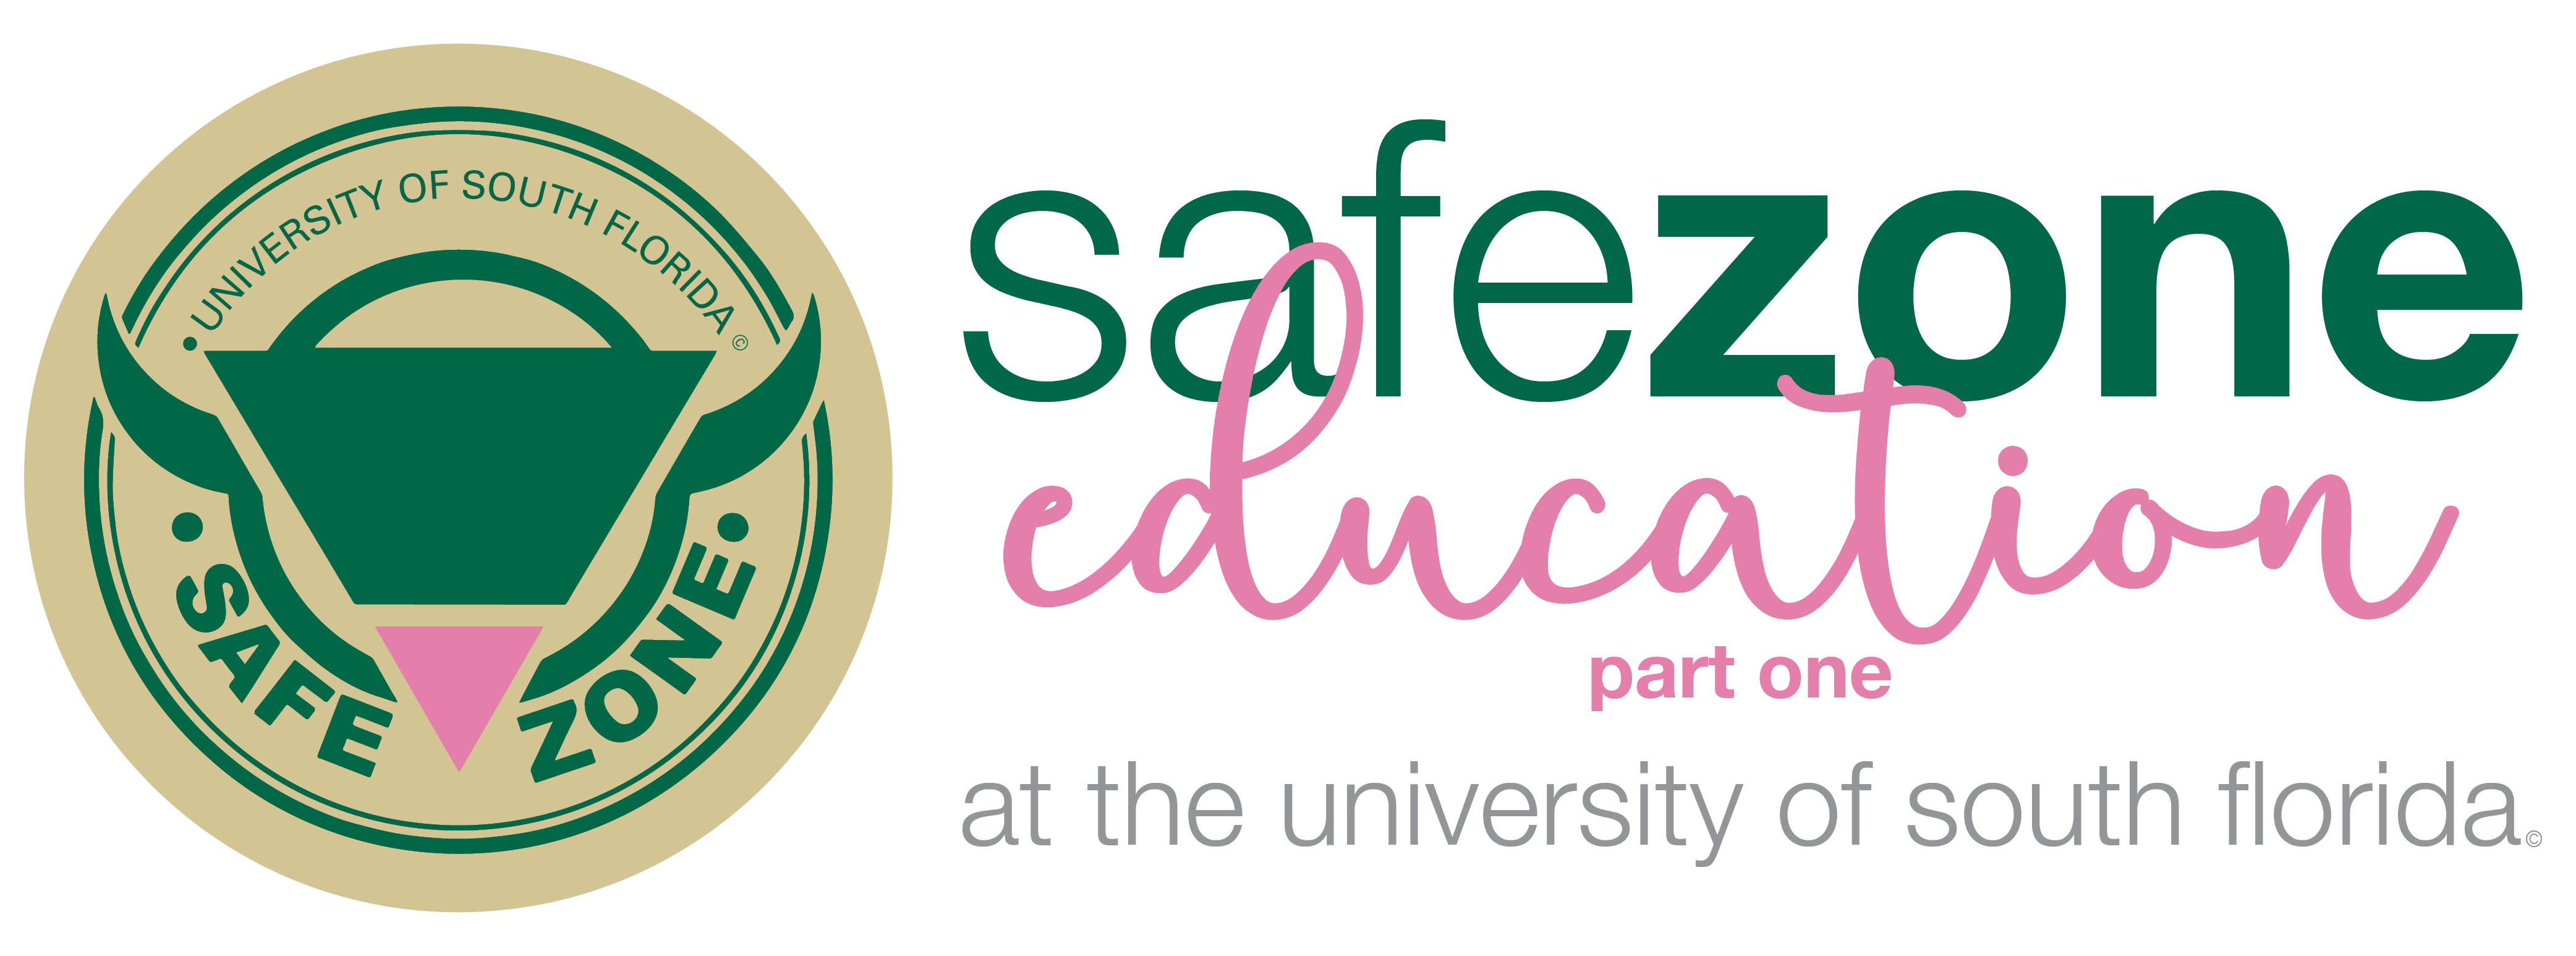 Safe Zone: Education Part One